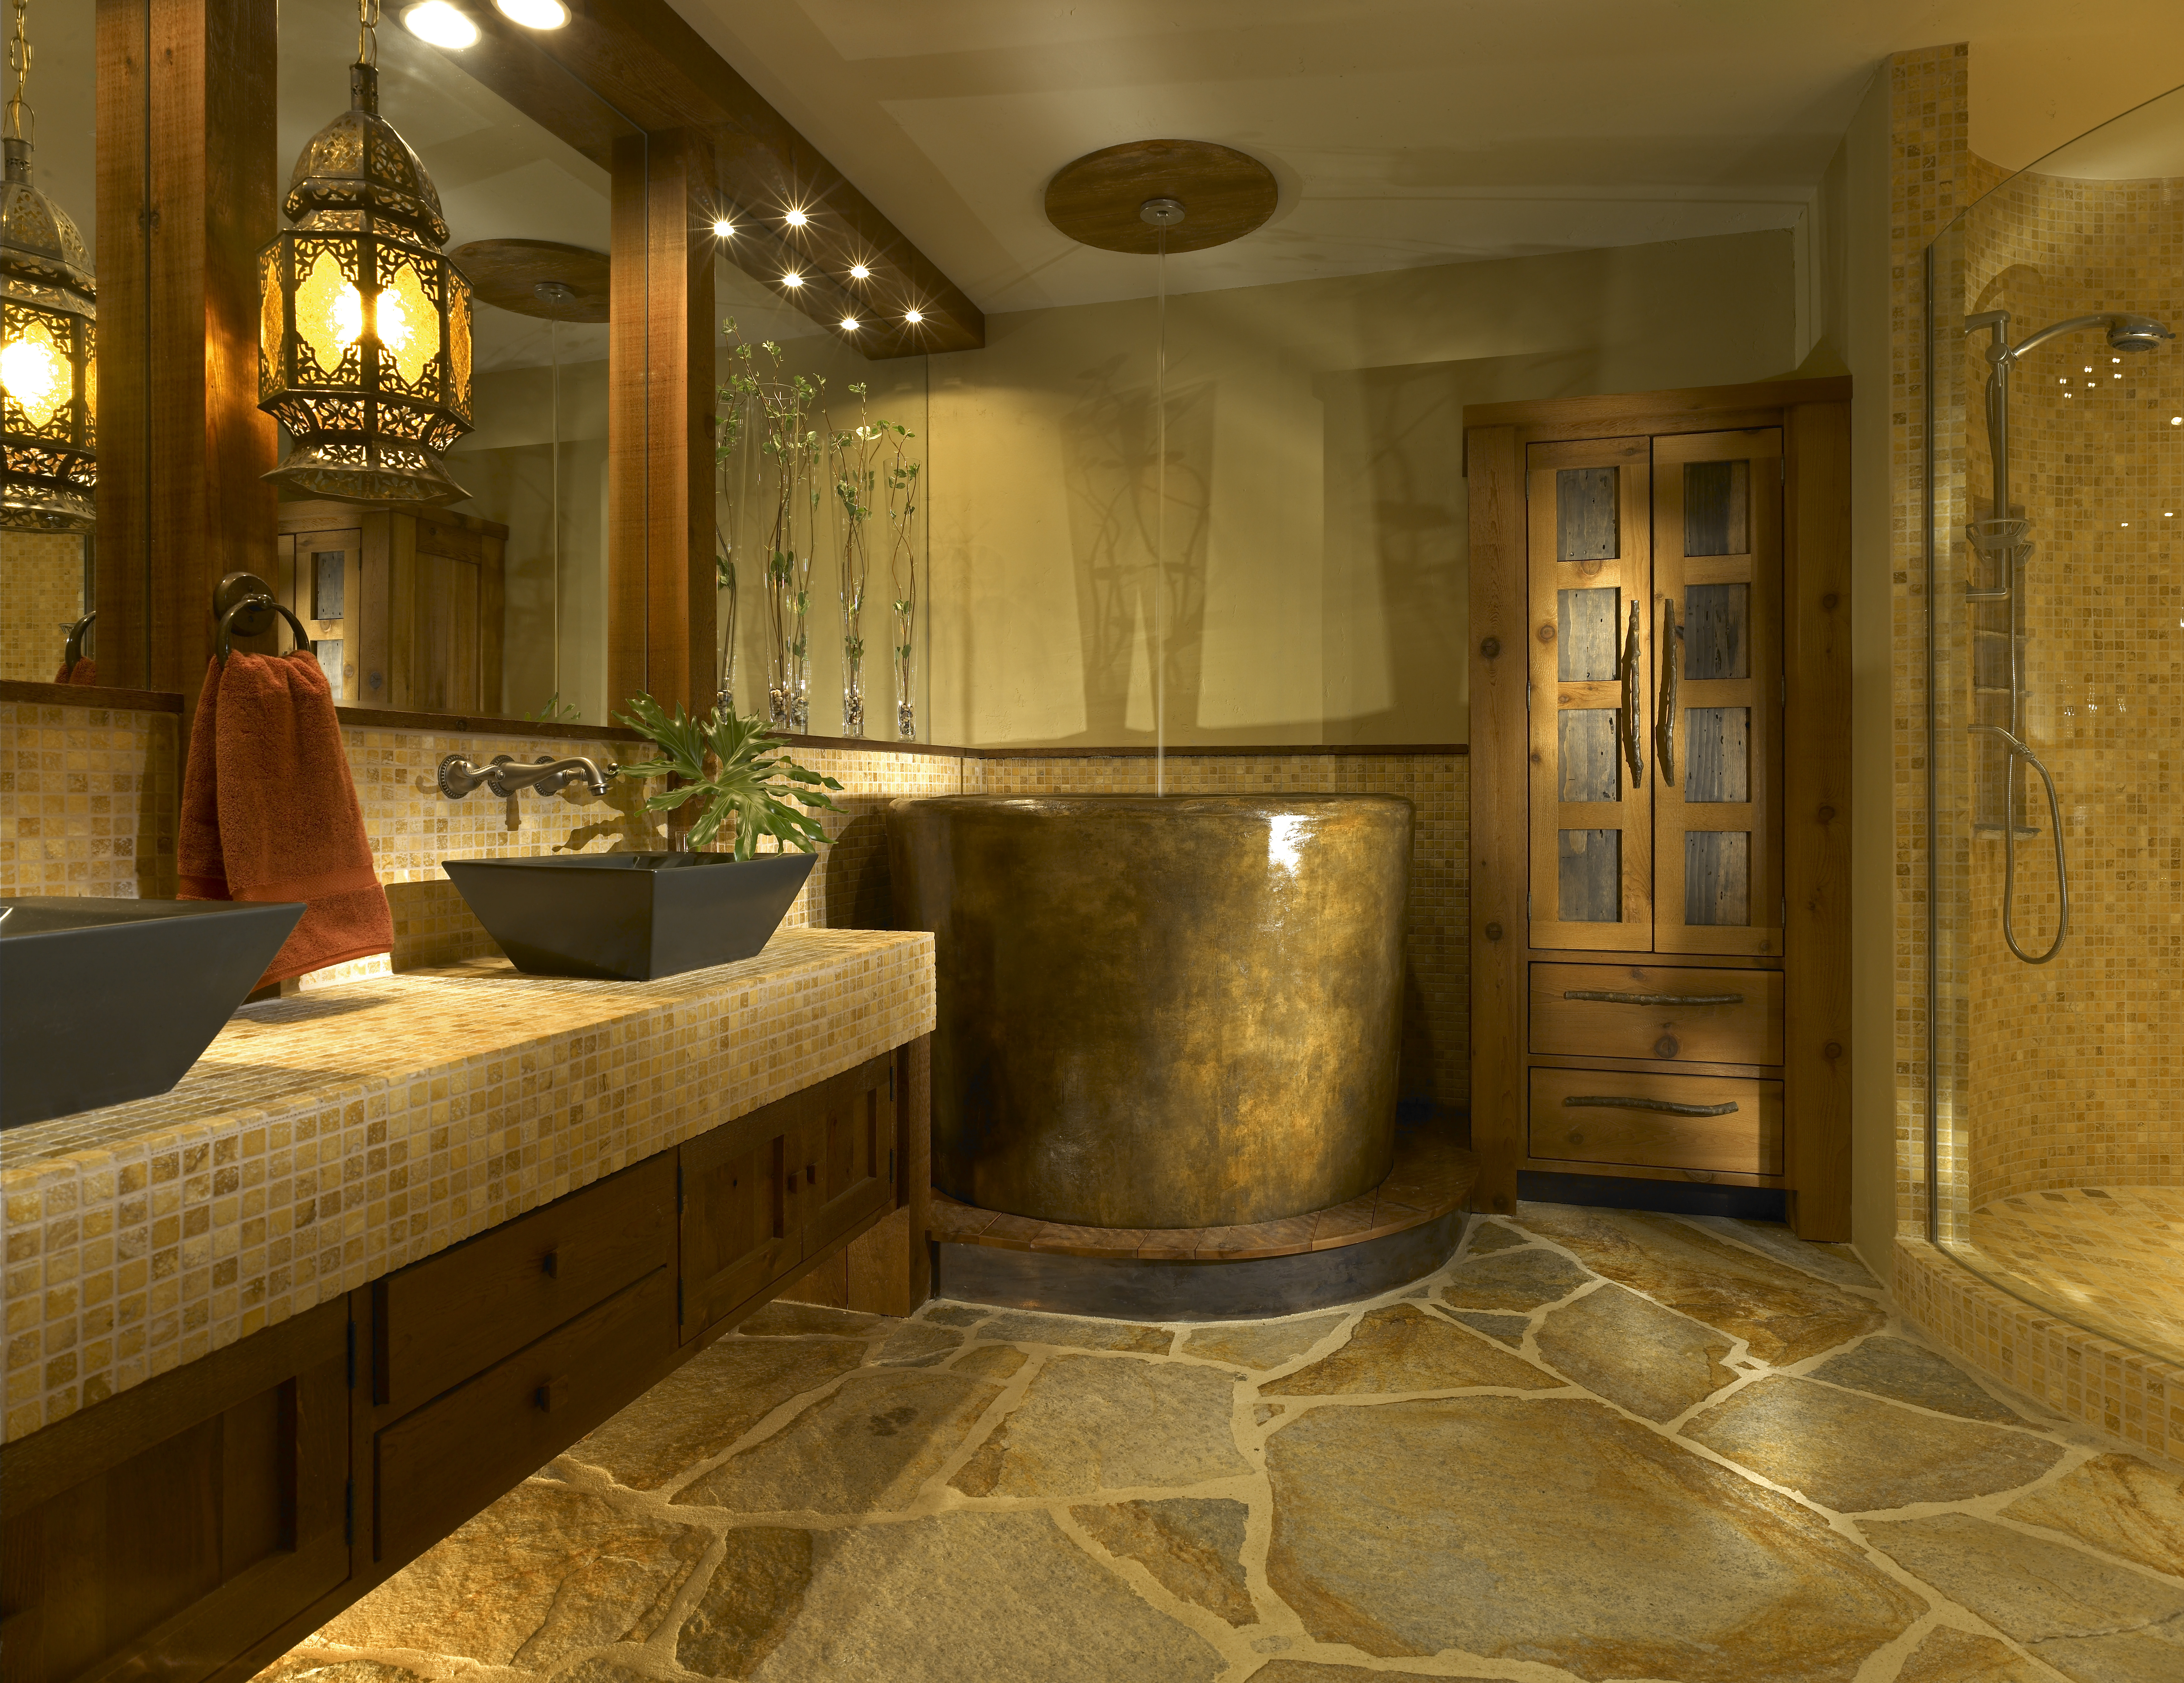 interior-ideas-stunning-small-luxury-bathrooms-by-black-washstand-on-the-cream-tile-base-having-draw